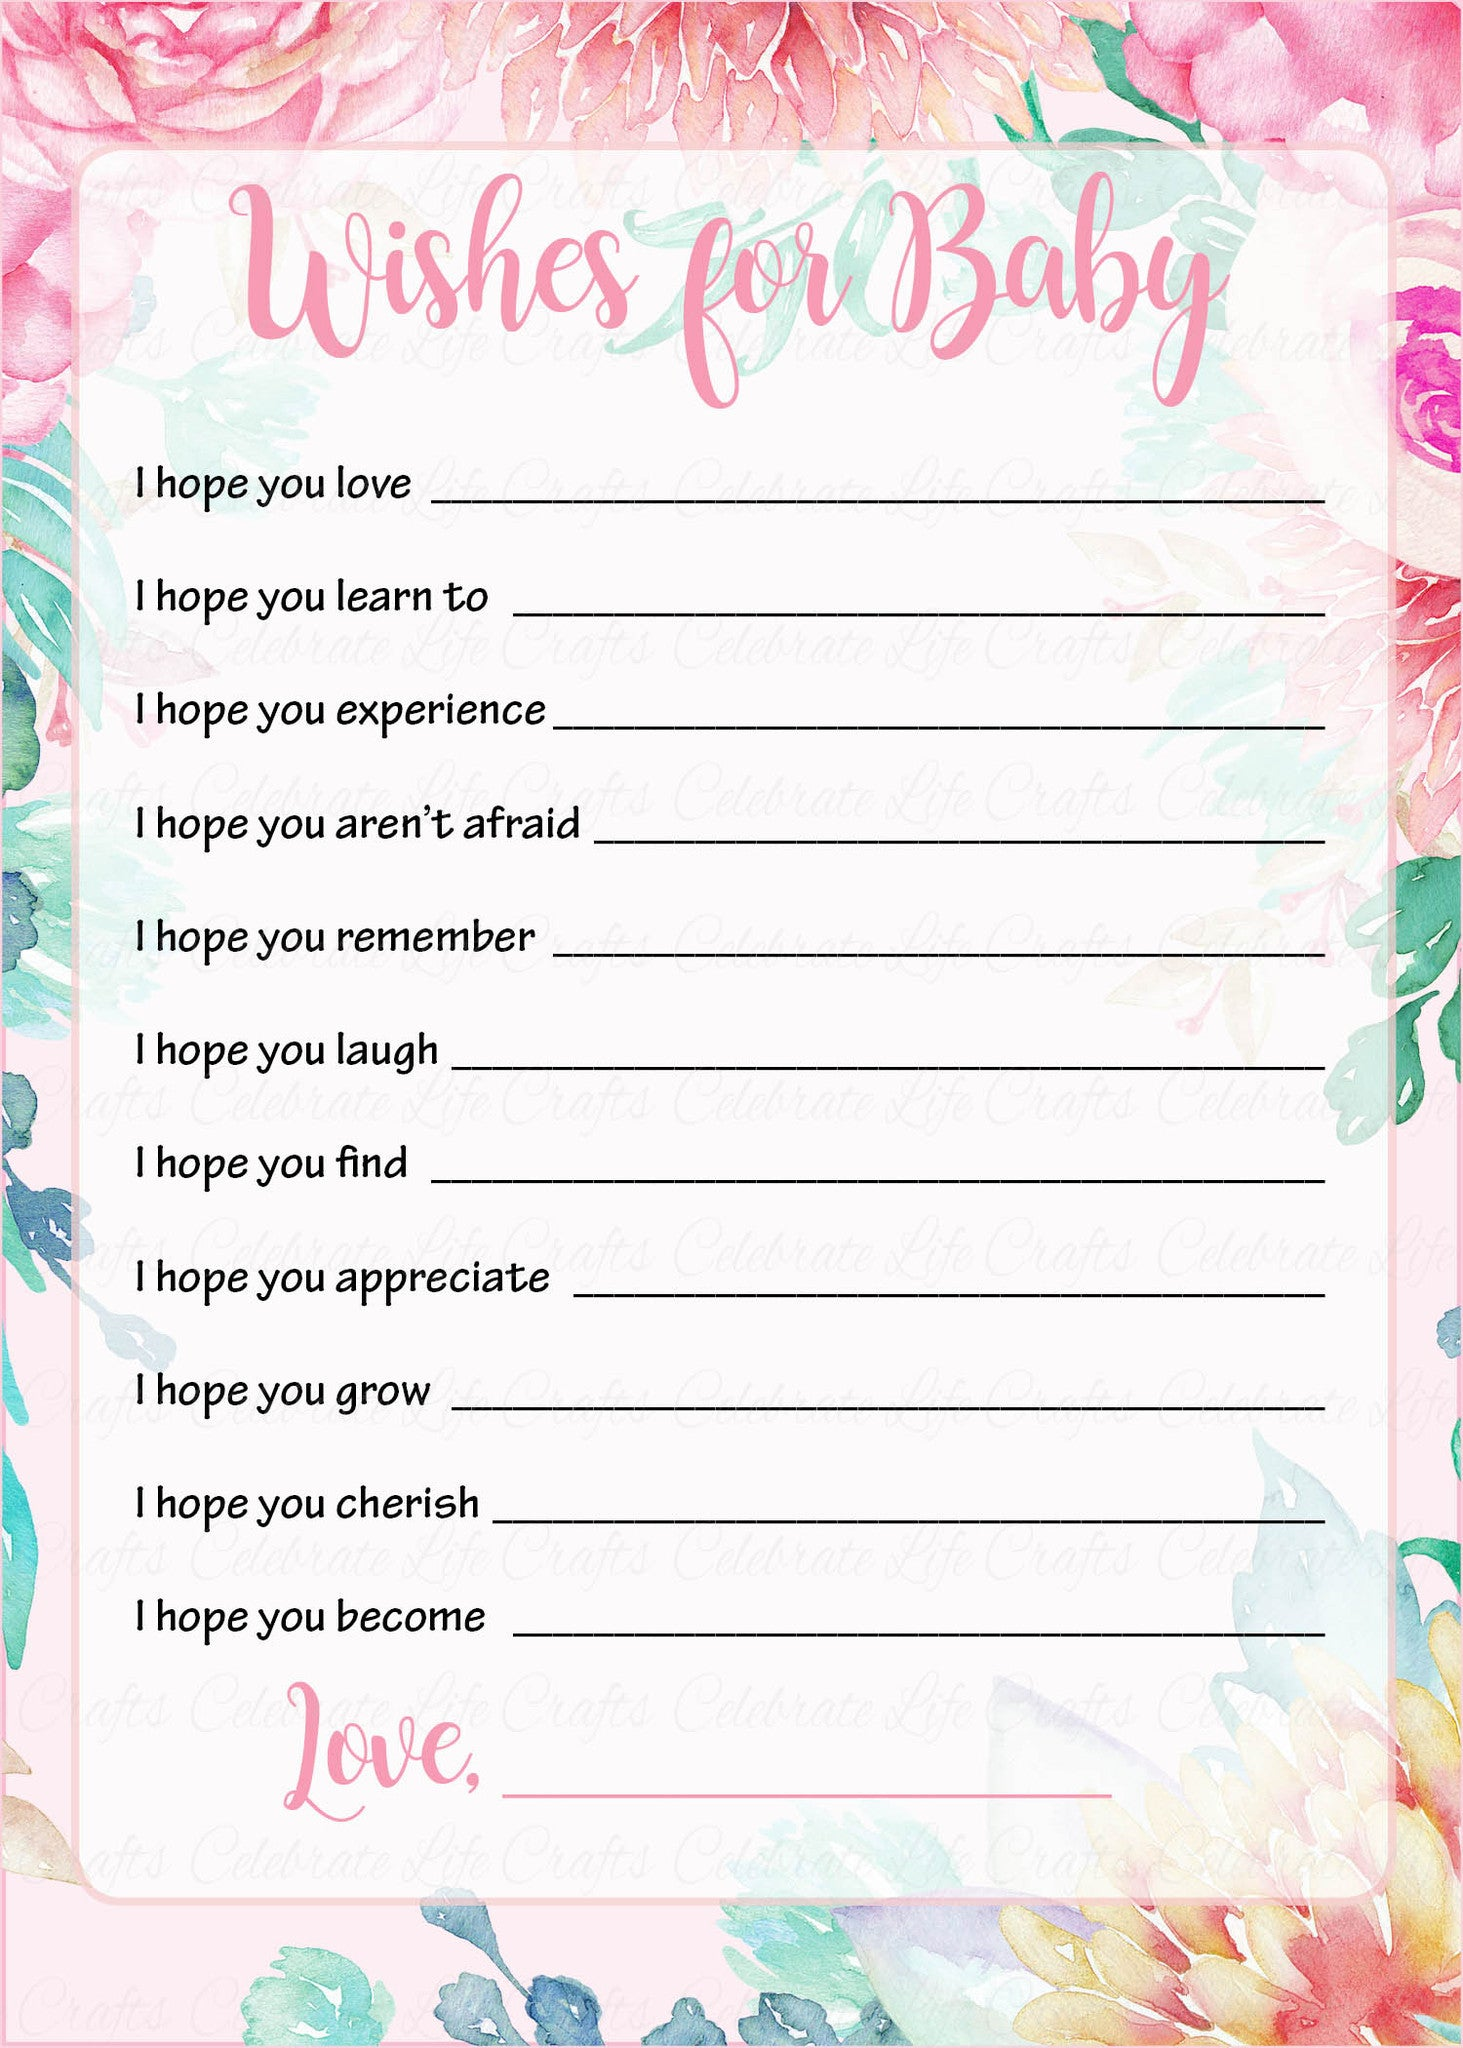 Great Wishes For Baby Cards   Printable Download   Pink Floral Spring Baby Shower  Activity   B33001.